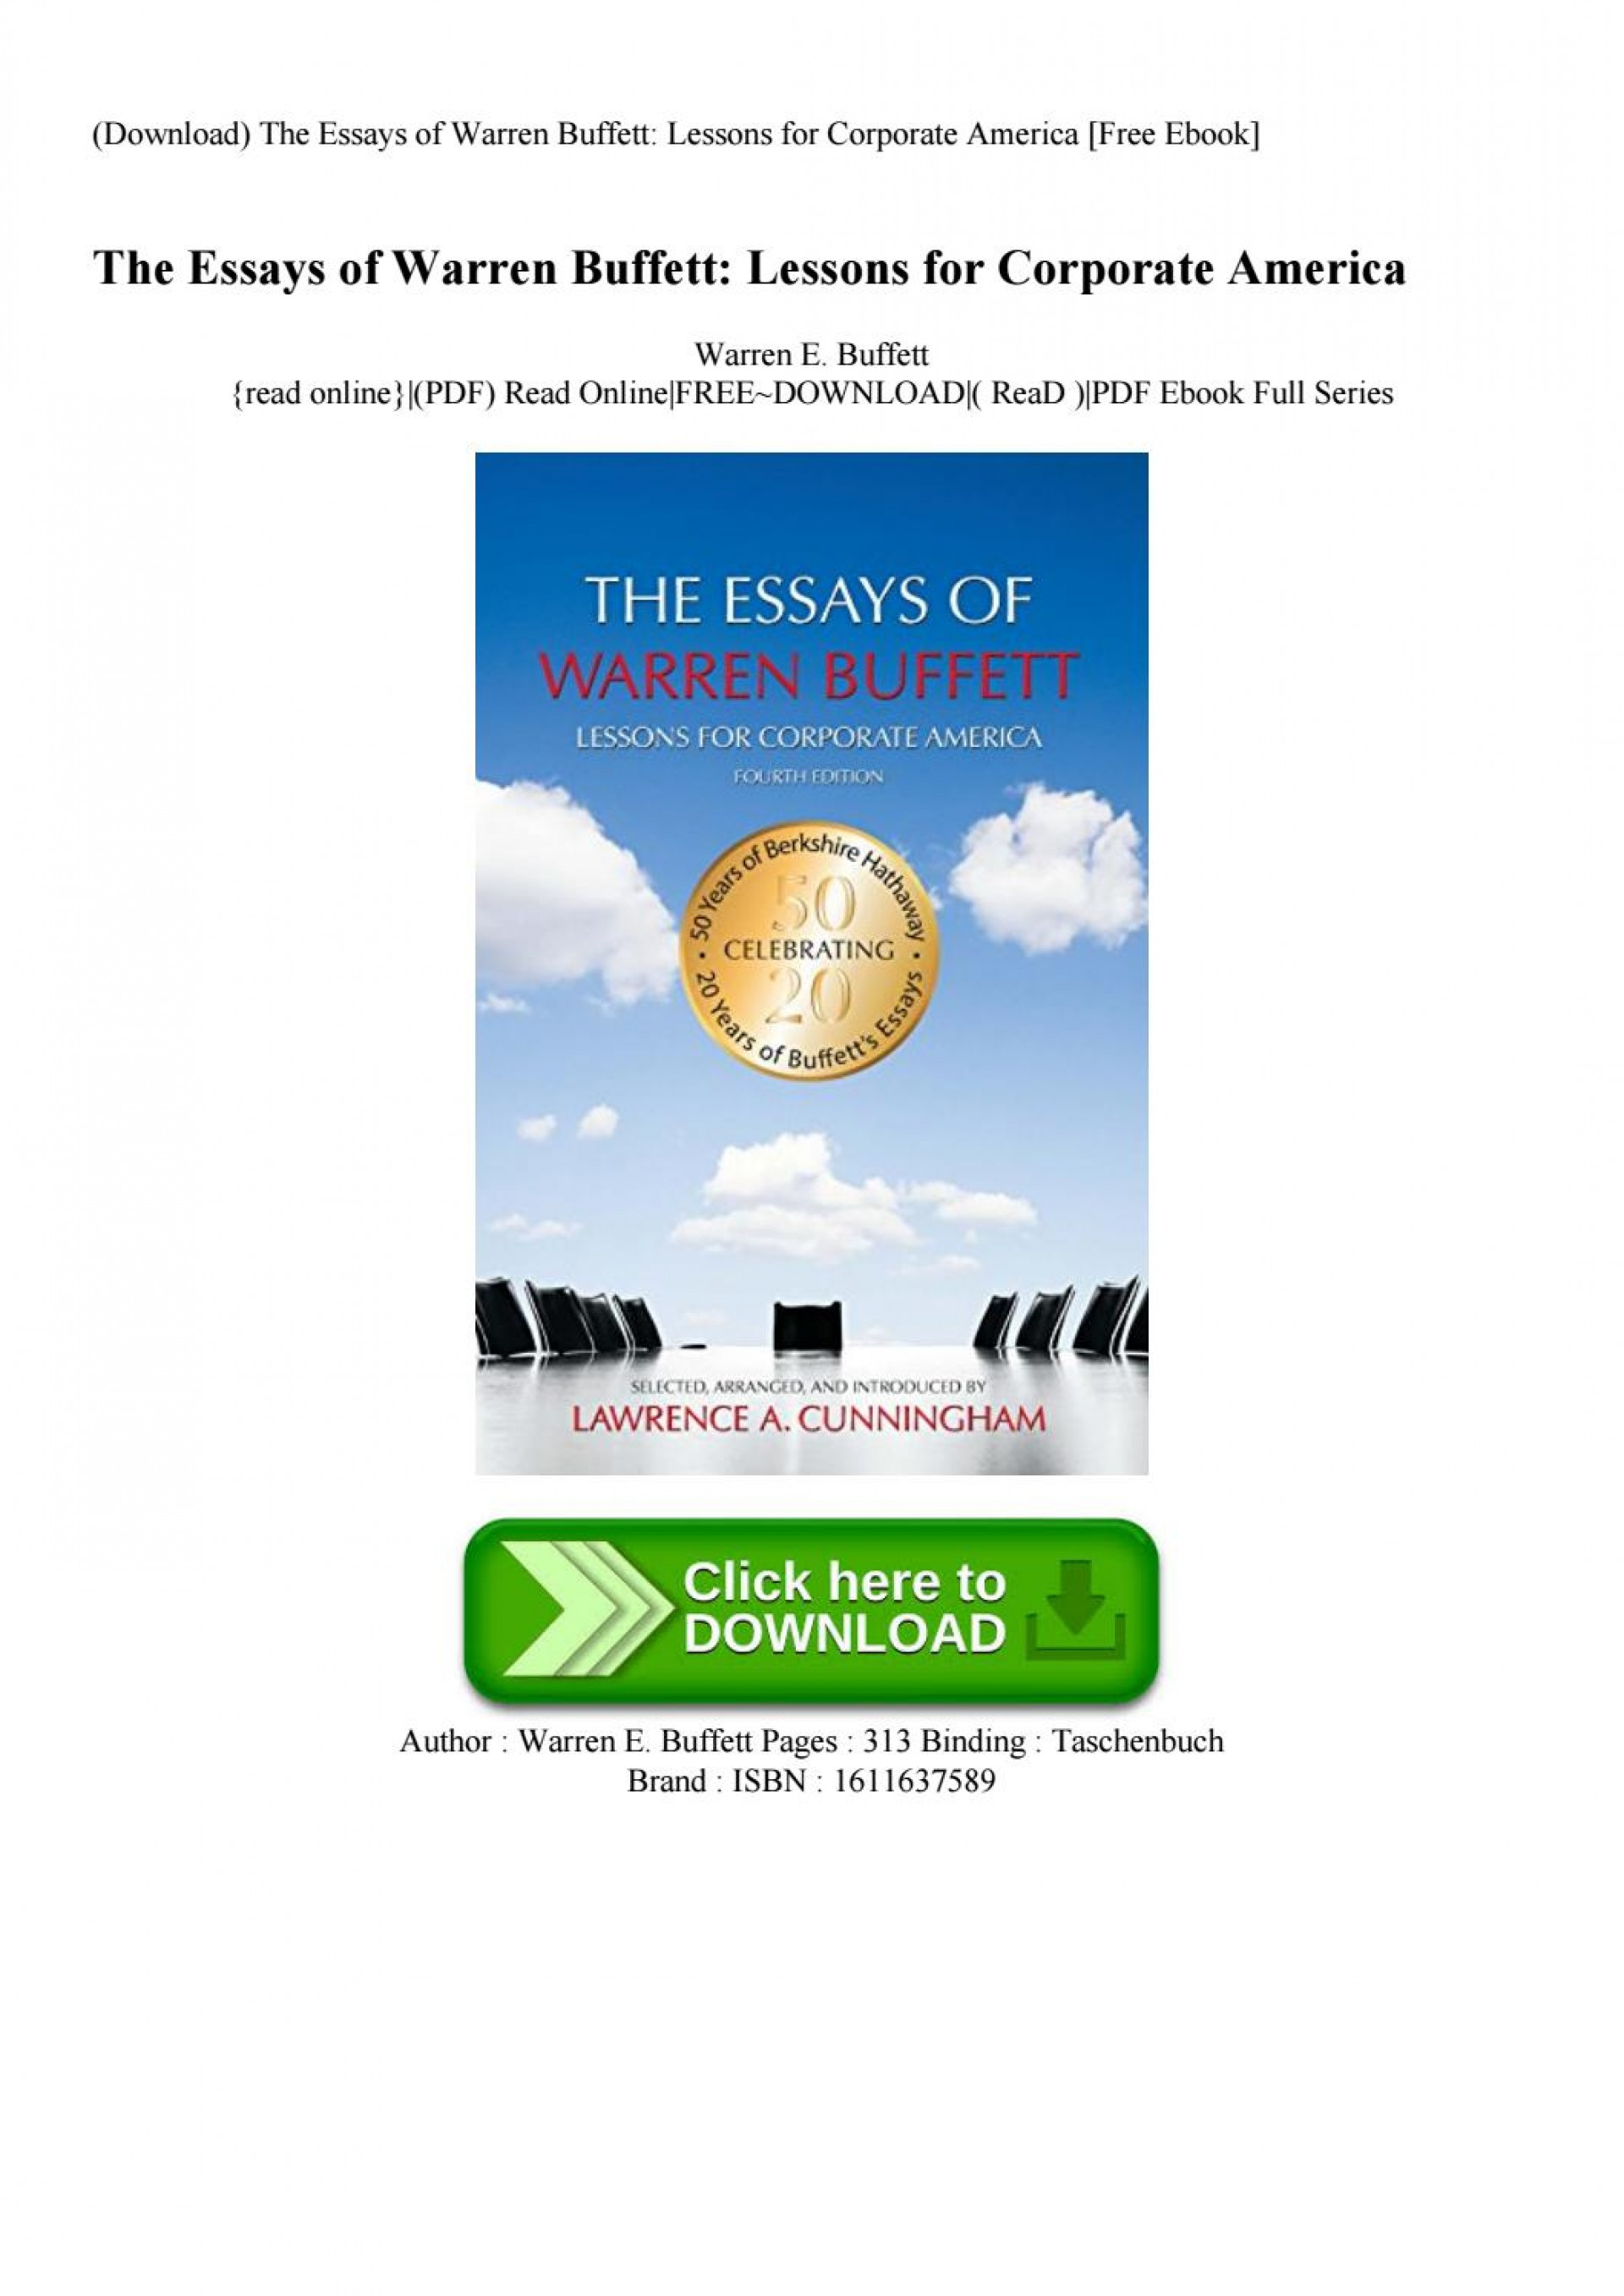 011 Essay Example Page 1 The Essays Of Warren Buffett Lessons For Corporate Remarkable America Third Edition 3rd Second Pdf Audio Book 1920